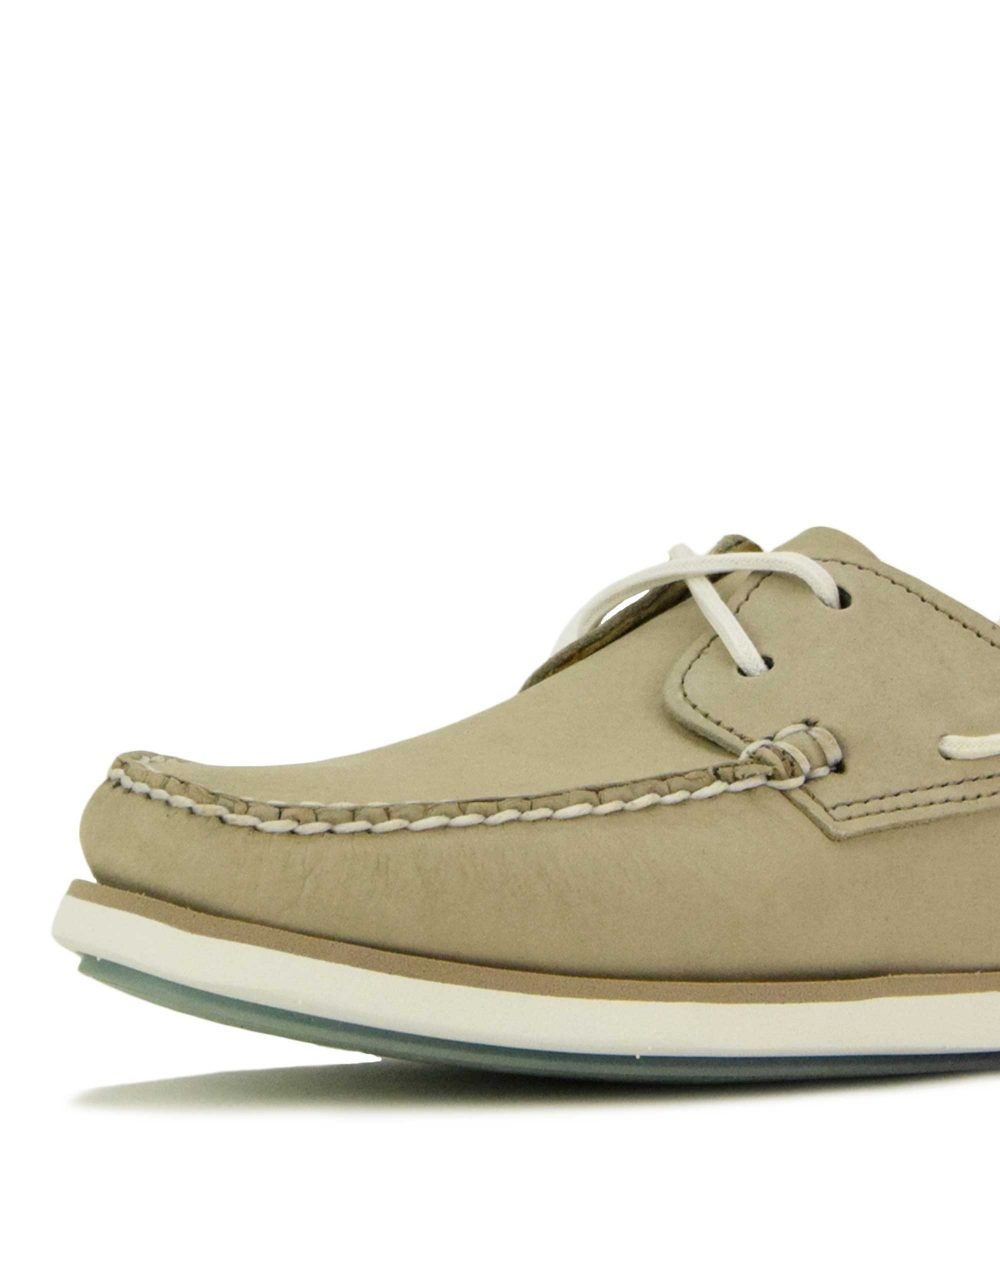 Timberland Atlantis Break Boat Shoe (TB0A2CM2 K51) Light Taupe